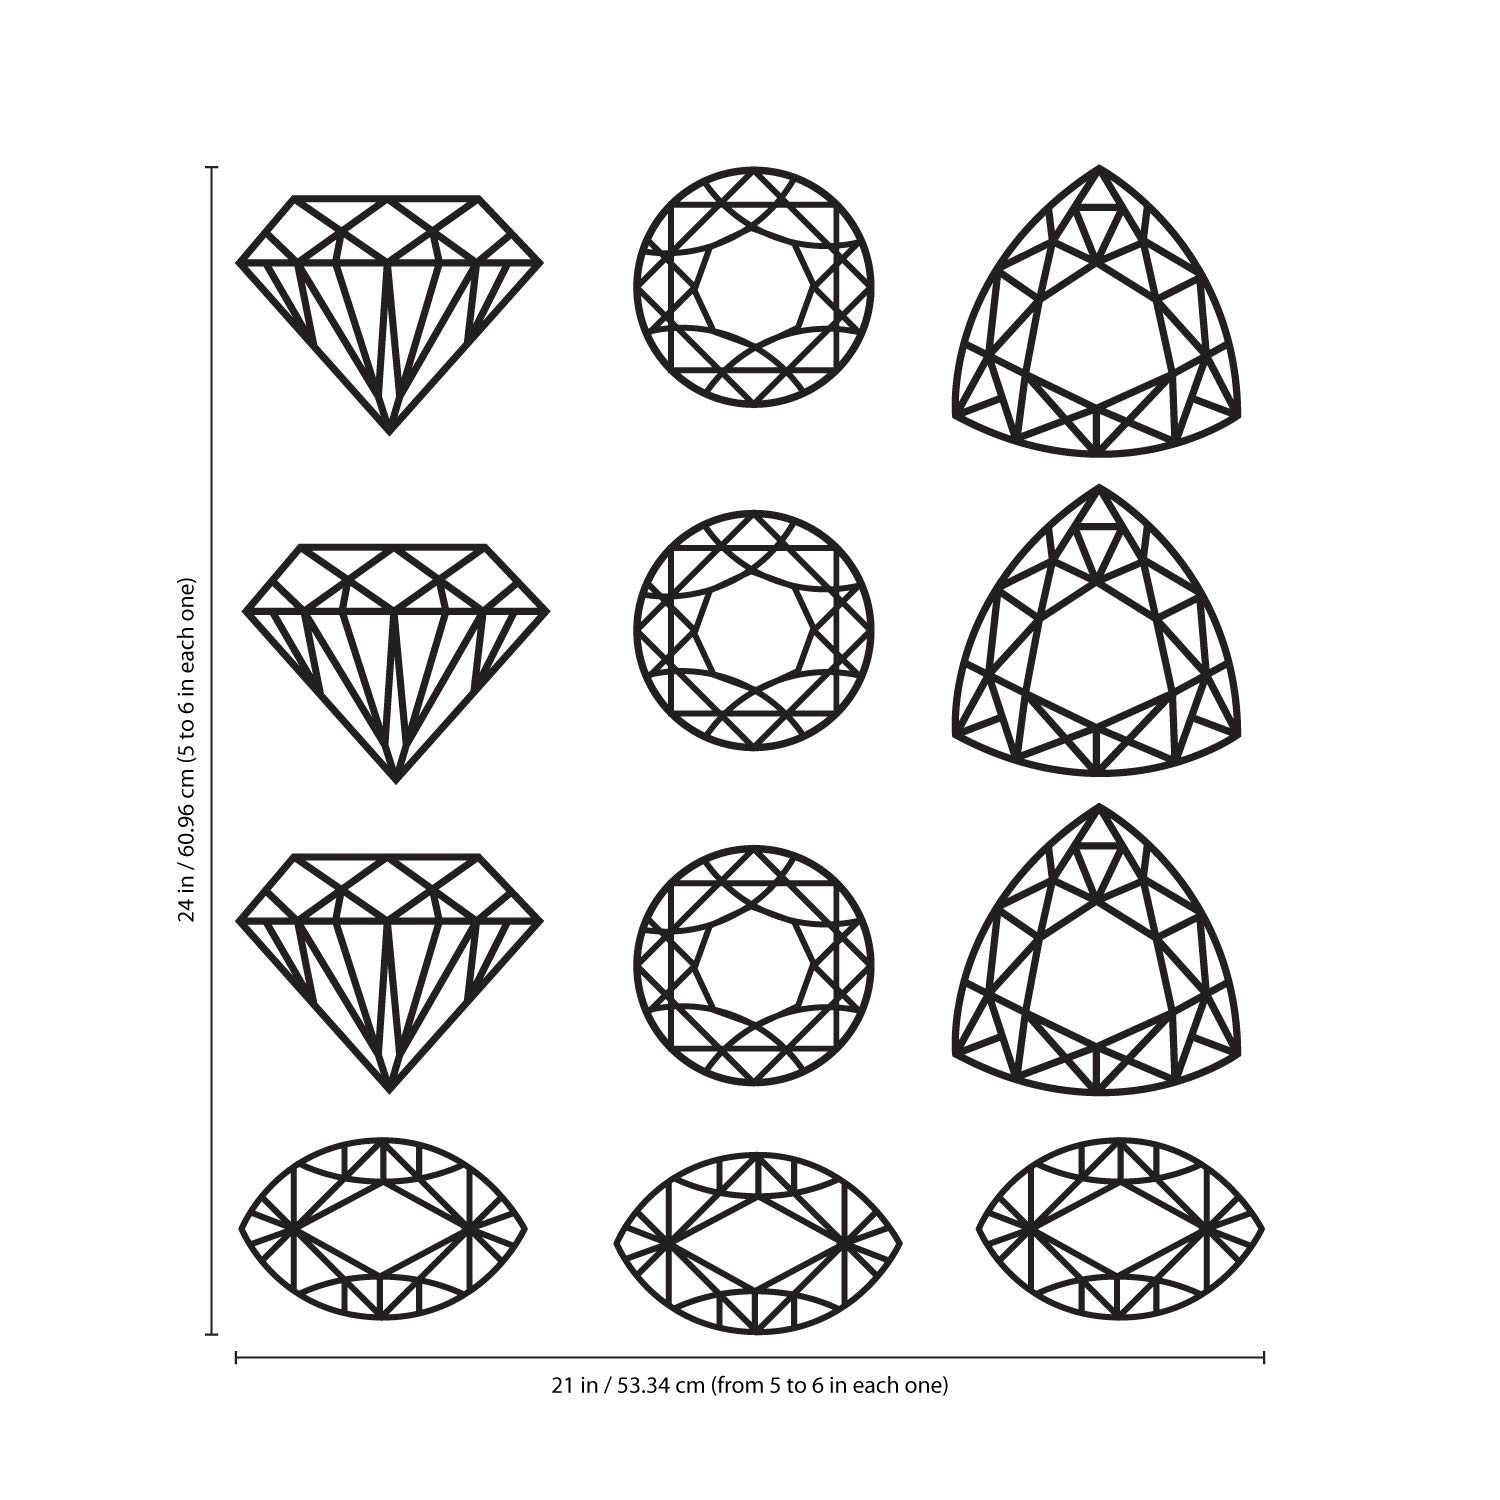 Jewels Set of 12 Vinyl Wall Art Decals from 5 x 6 Each, White Girly Toddler Teens Womens Indoor Outdoor Decor Modern Home Bedroom Living Room Apartment Nursery Playroom from 5 x 6 Each